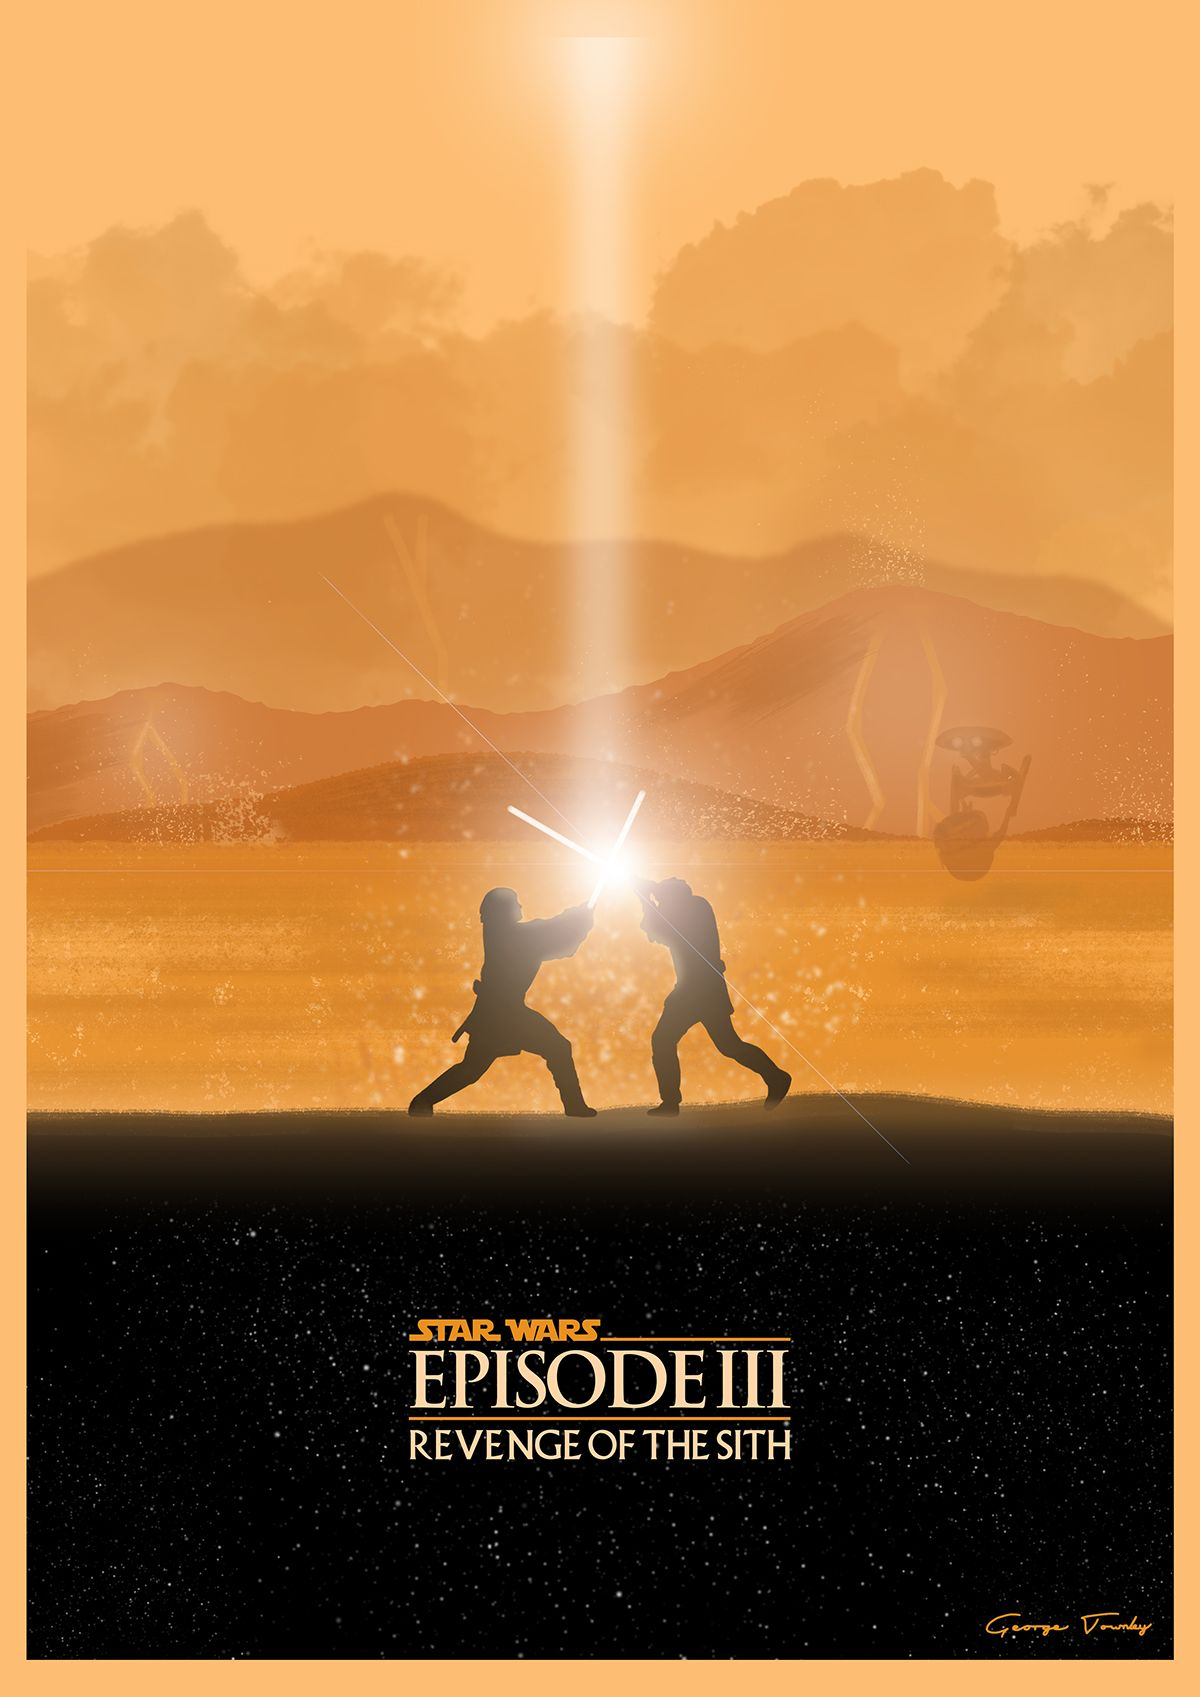 Star Wars Prequel Trilogy Posters - Created by George Townley | The ...